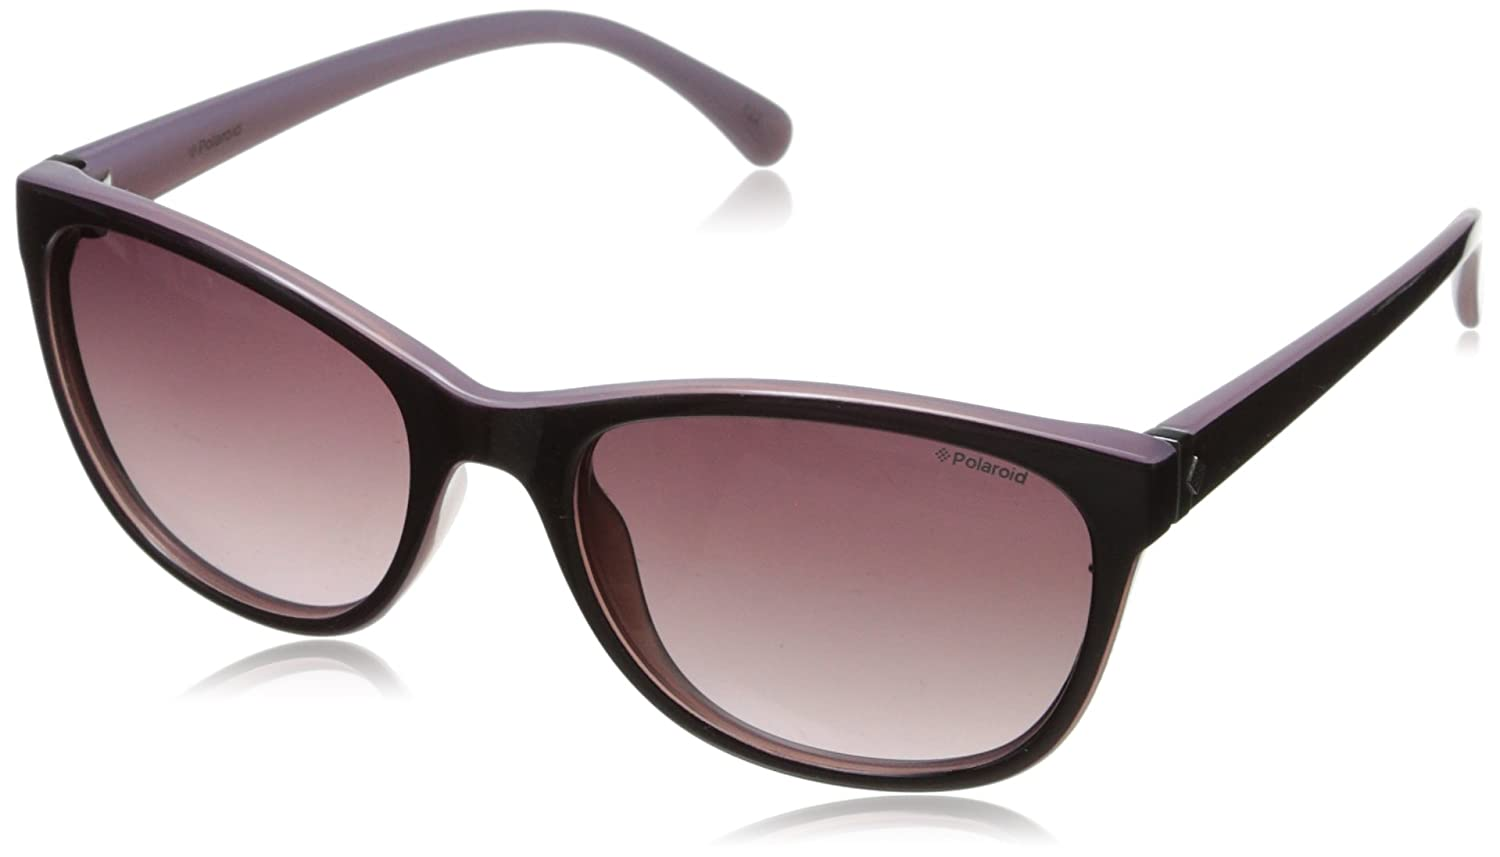 Polaroid P8339 JR C6T, Gafas de Sol para Mujer, Morado (Purple/Burgundy Shaded Polarized), 55: Amazon.es: Ropa y accesorios